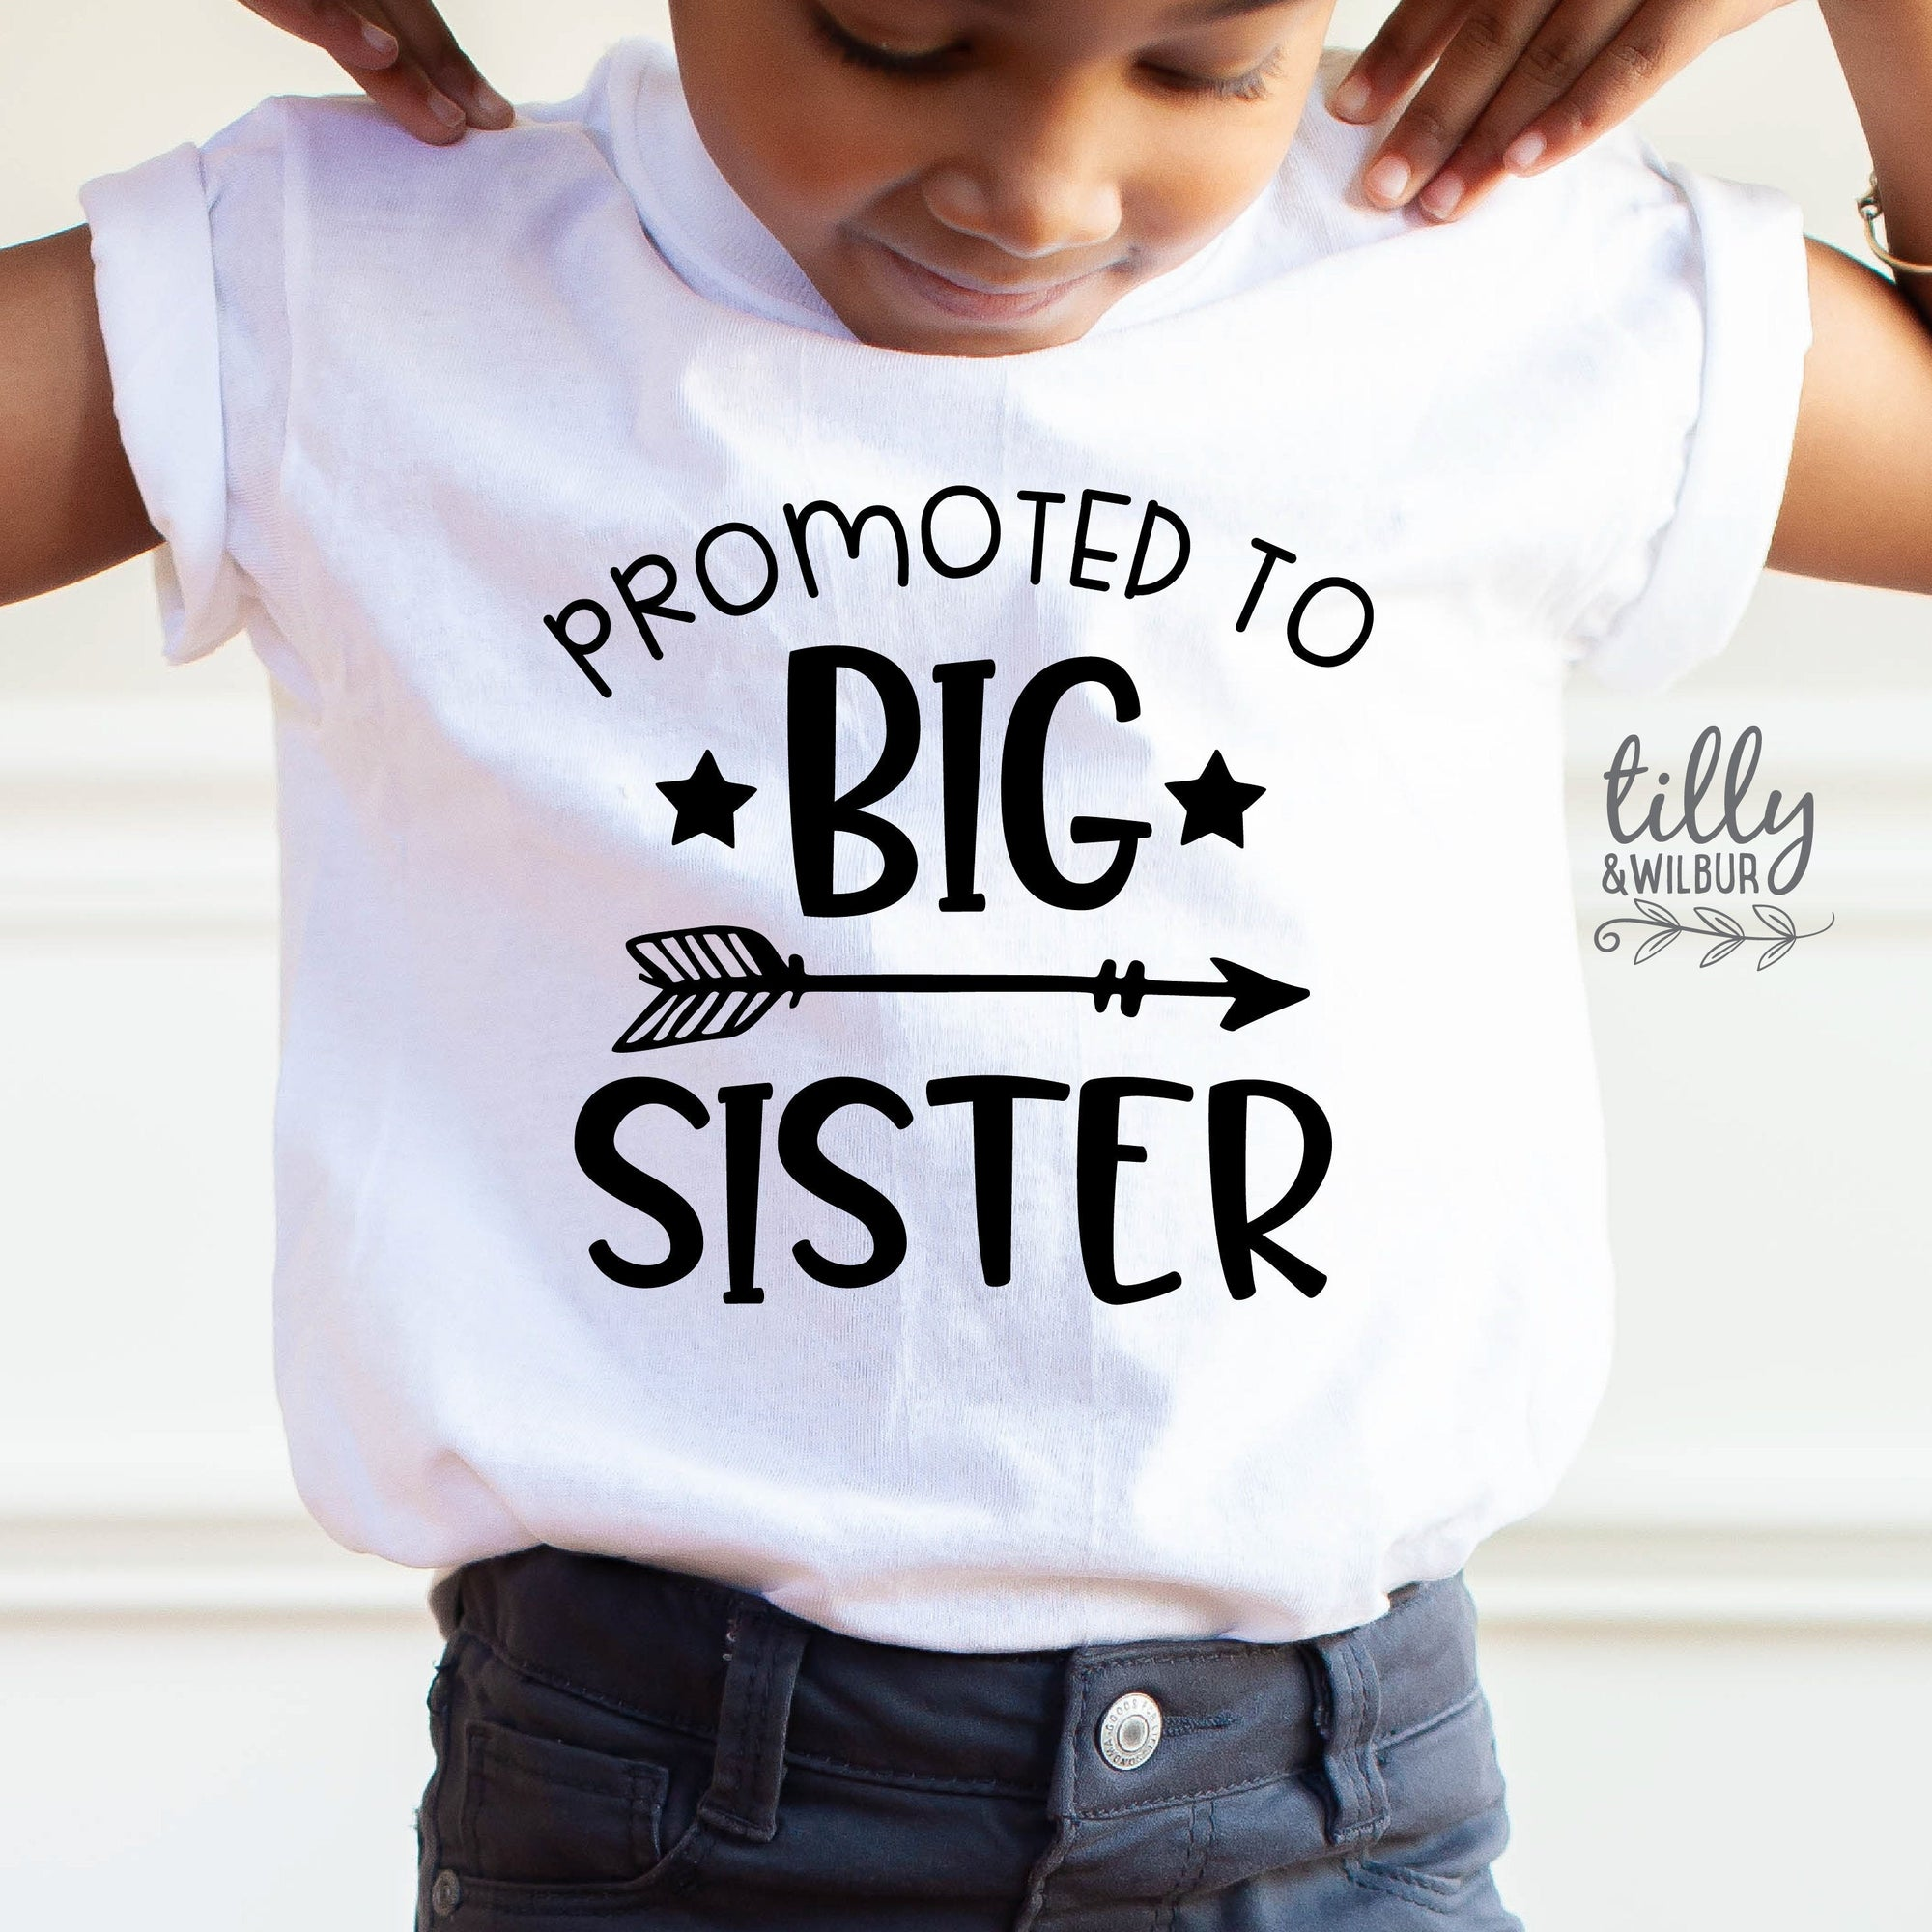 Promoted To Big Sister T-Shirt, Big Sis T-Shirt,  Big Sister Gift, Pregnancy Announcement Shirt, I'm Going To Be A Big Sister T-Shirt, Sis